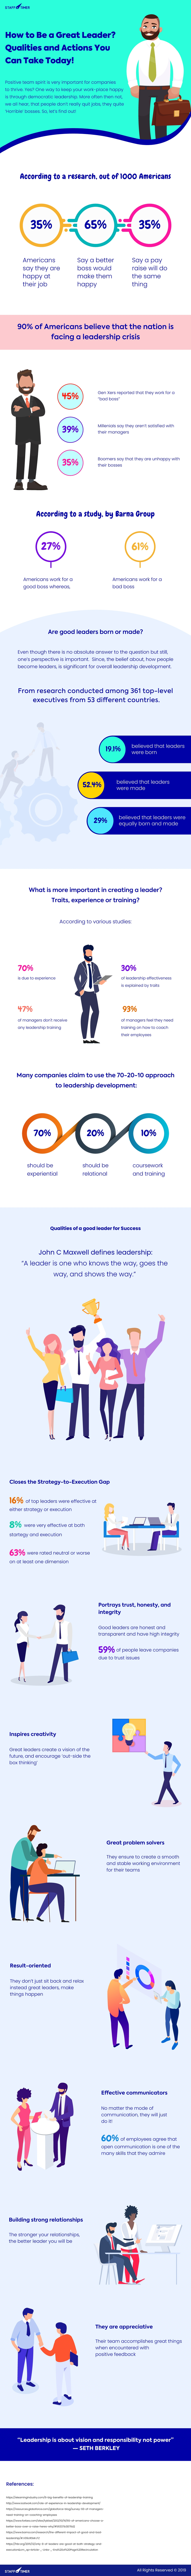 How to be a great leader infographics